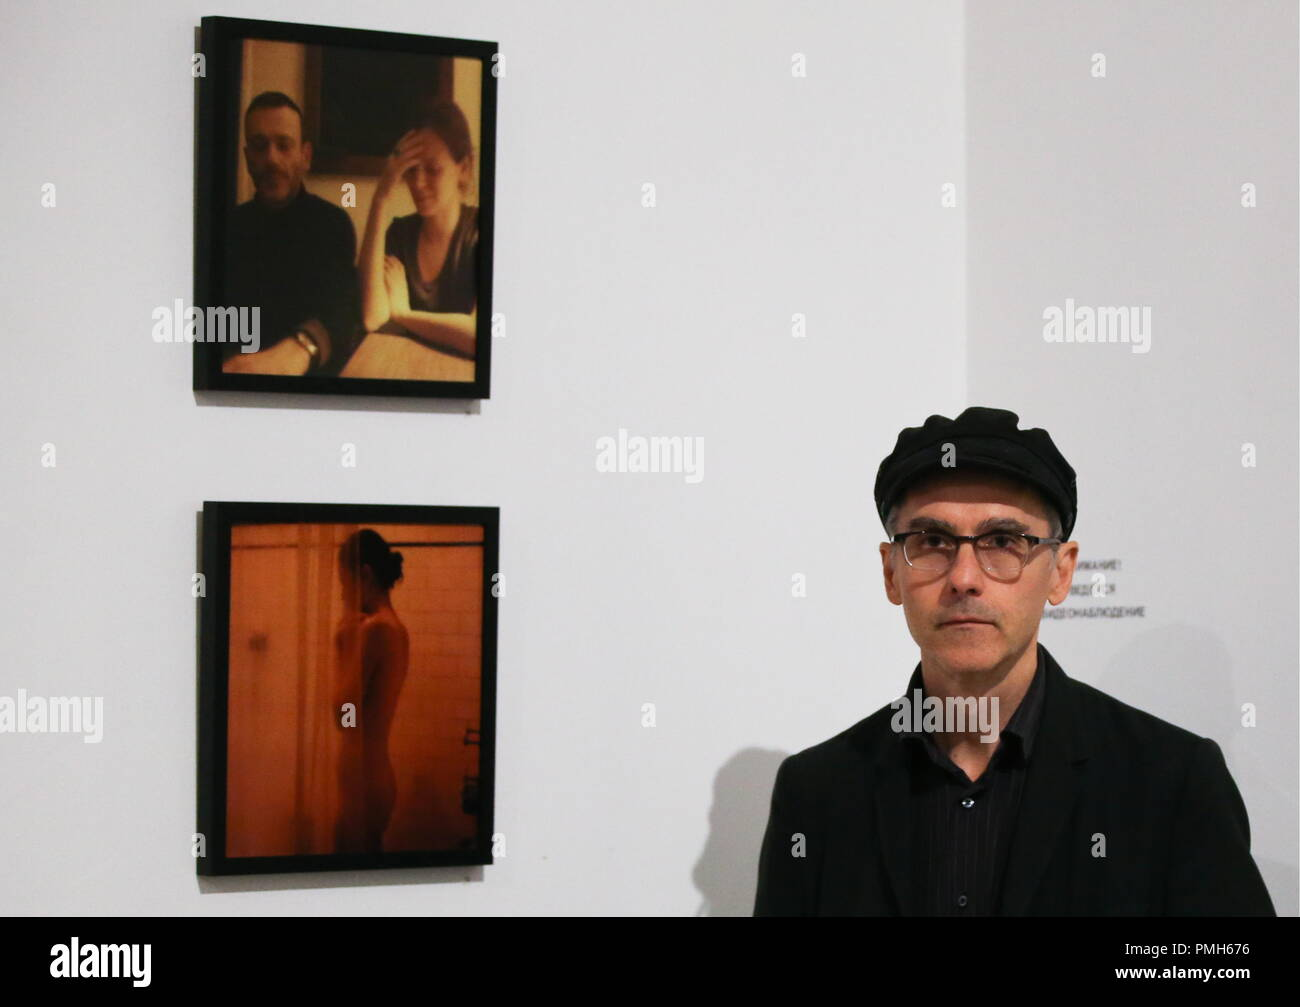 """ST PETERSBURG, RUSSIA - SEPTEMBER 18, 2018: American filmmaker Jem Cohen at an exhibition of his photos titled """"Jem Cohen. Looking for the Permanent Ghost"""" opened at St Petersburg's KGallery as part of the 28th Message to Man International Film Festival. Peter Kovalev/TASS Stock Photo"""